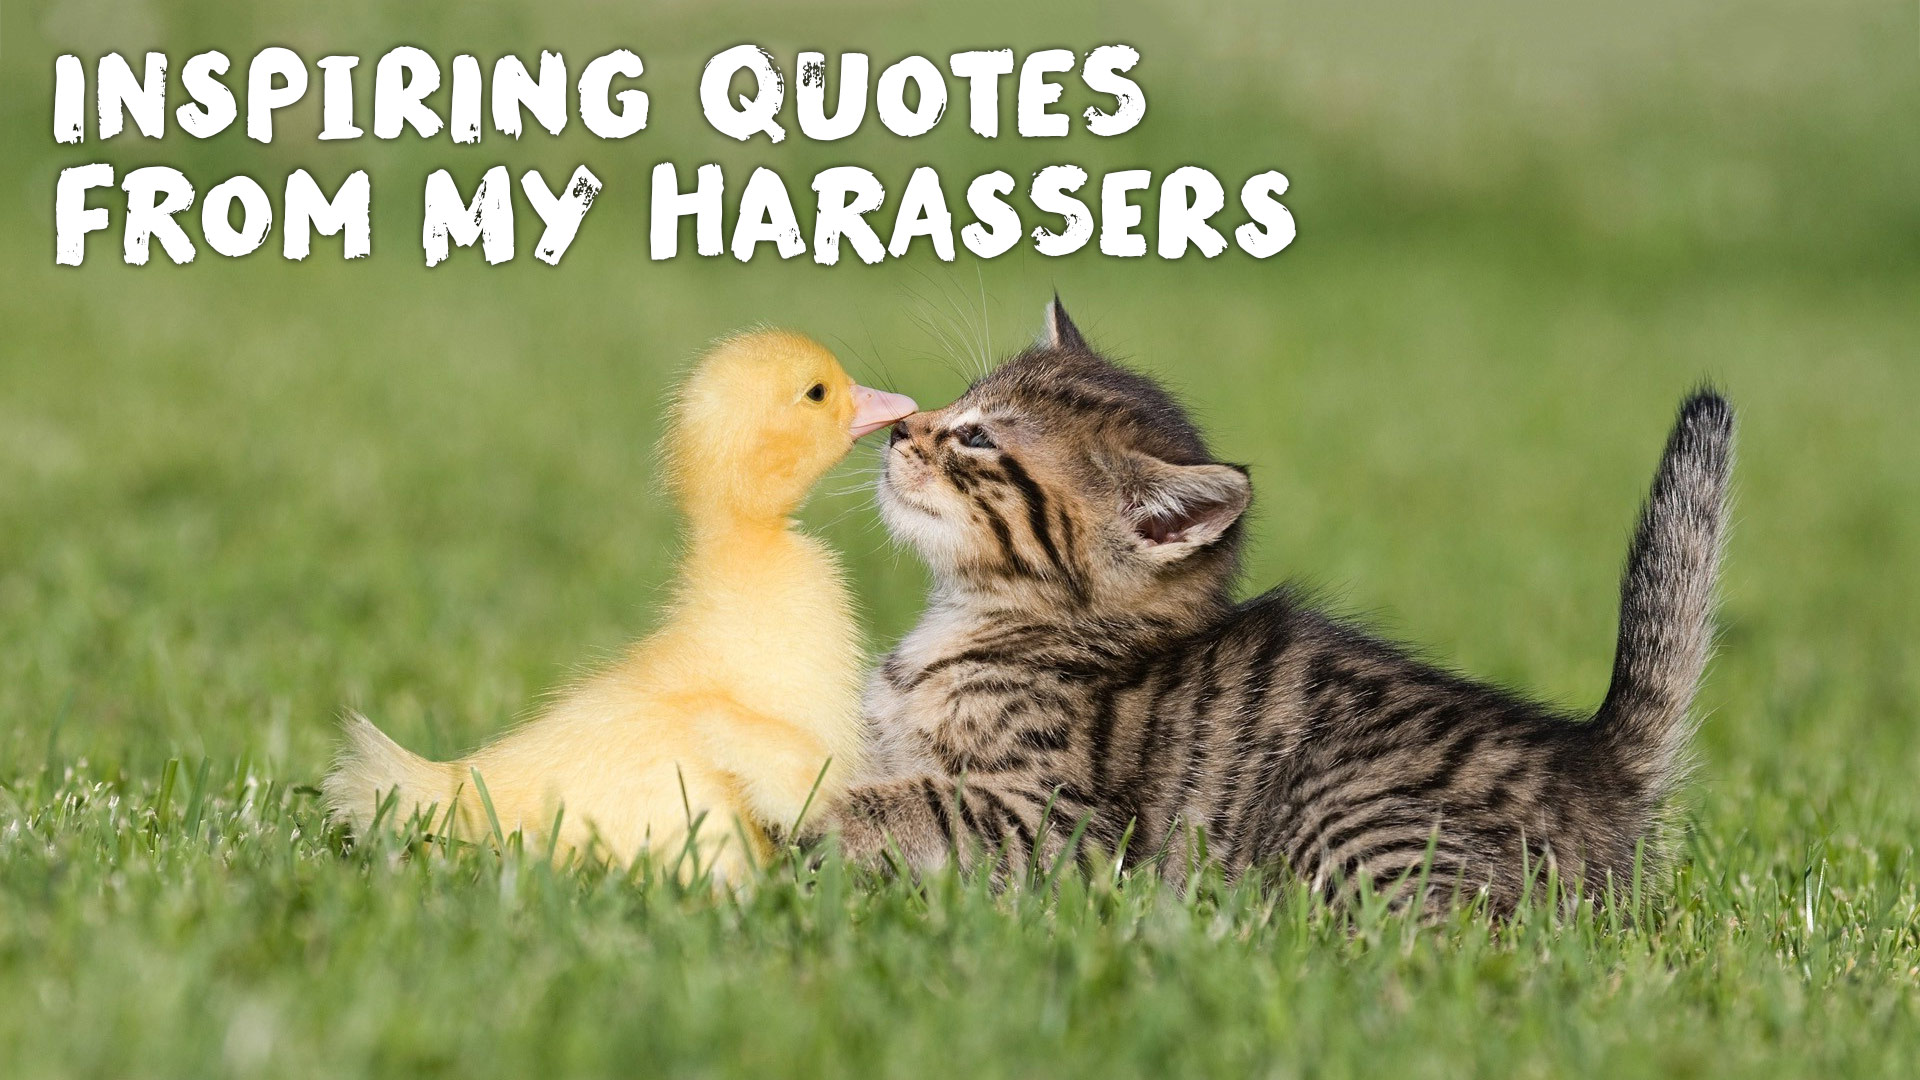 Inspiring Quotes from My Harassers